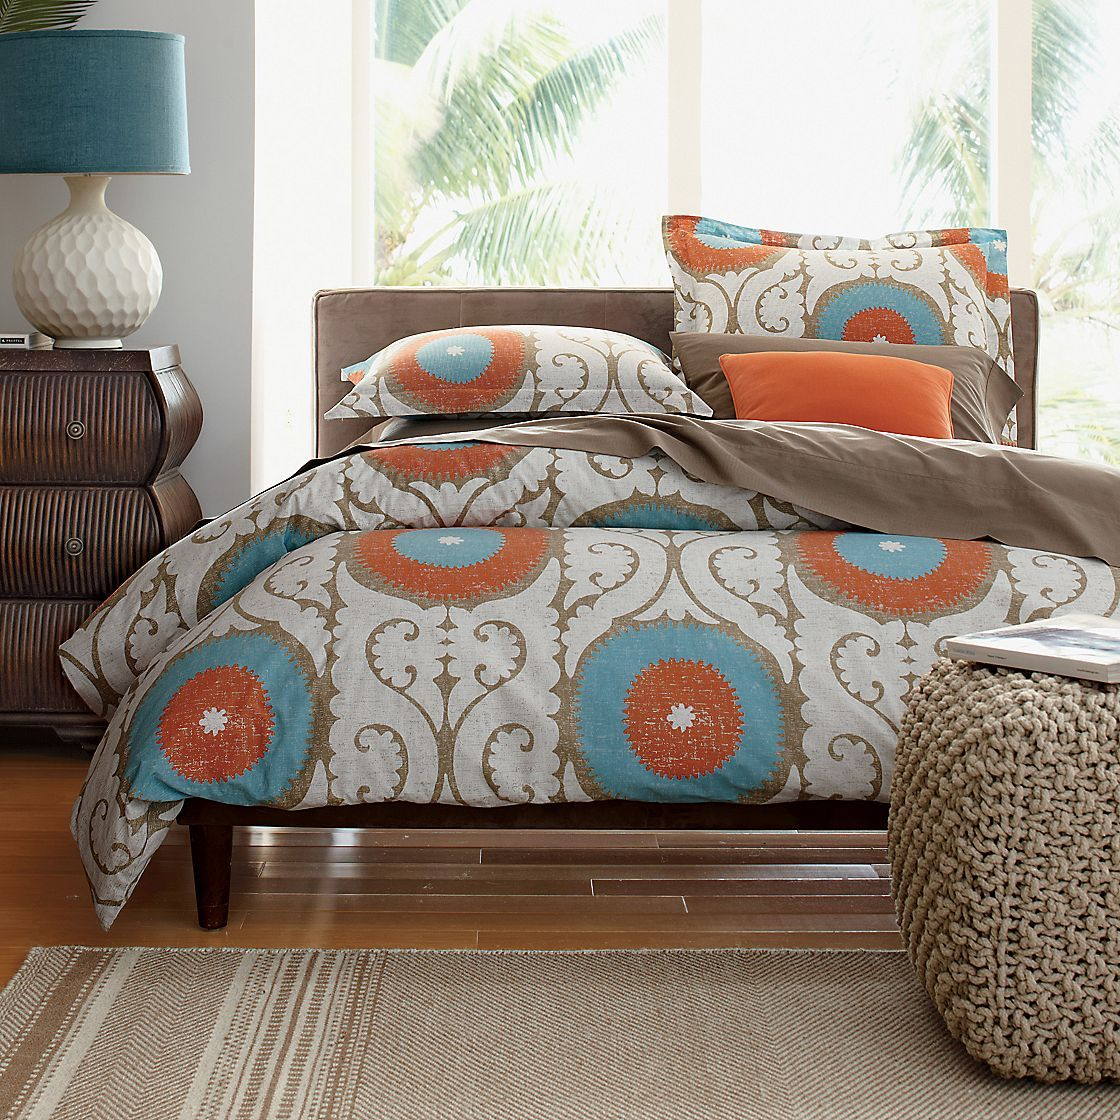 Odyssey Percale Comforter Cover/Duvet Cover and Sham The